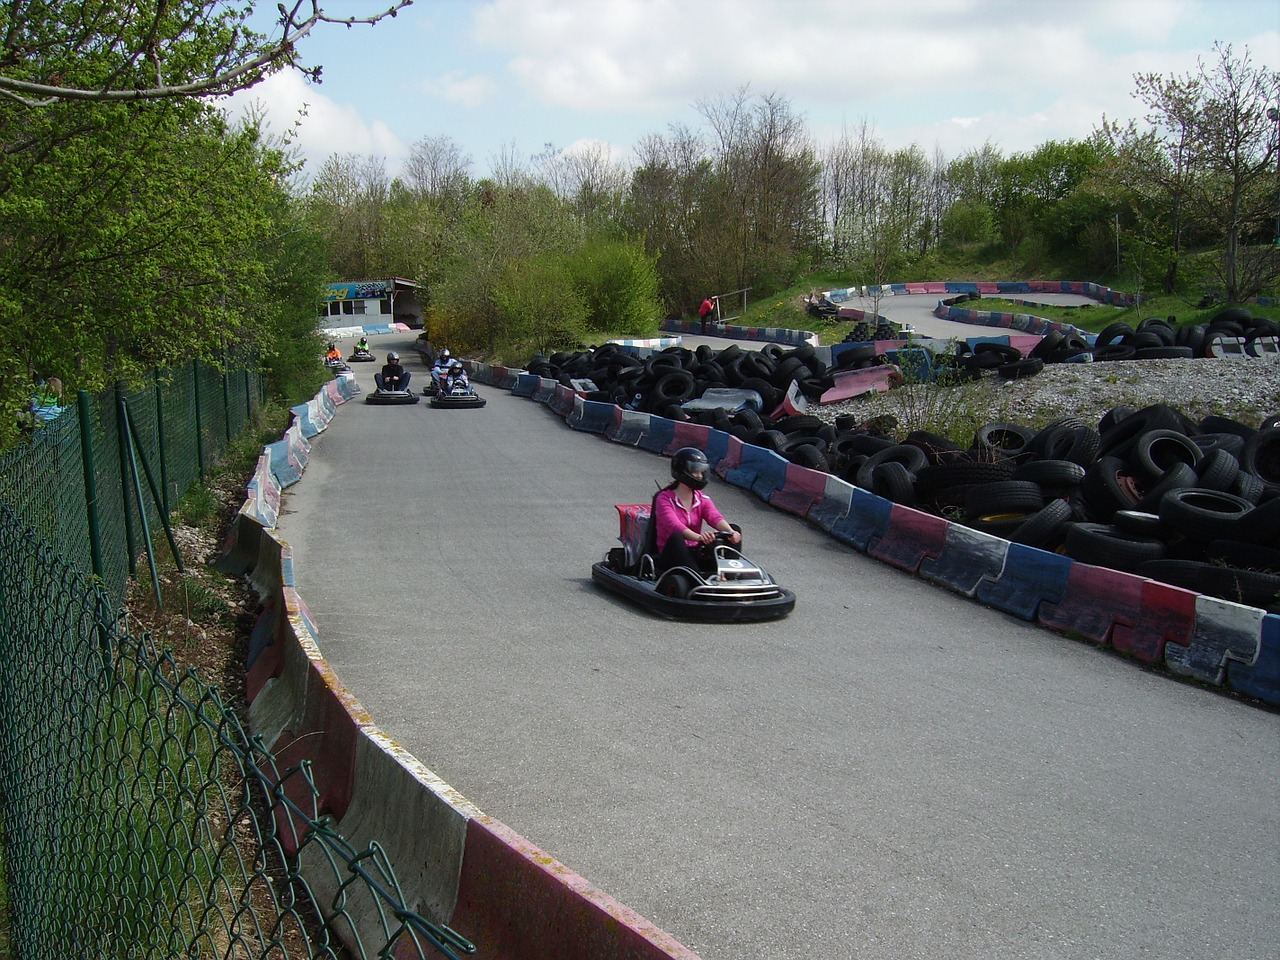 karting kart go kart free photo